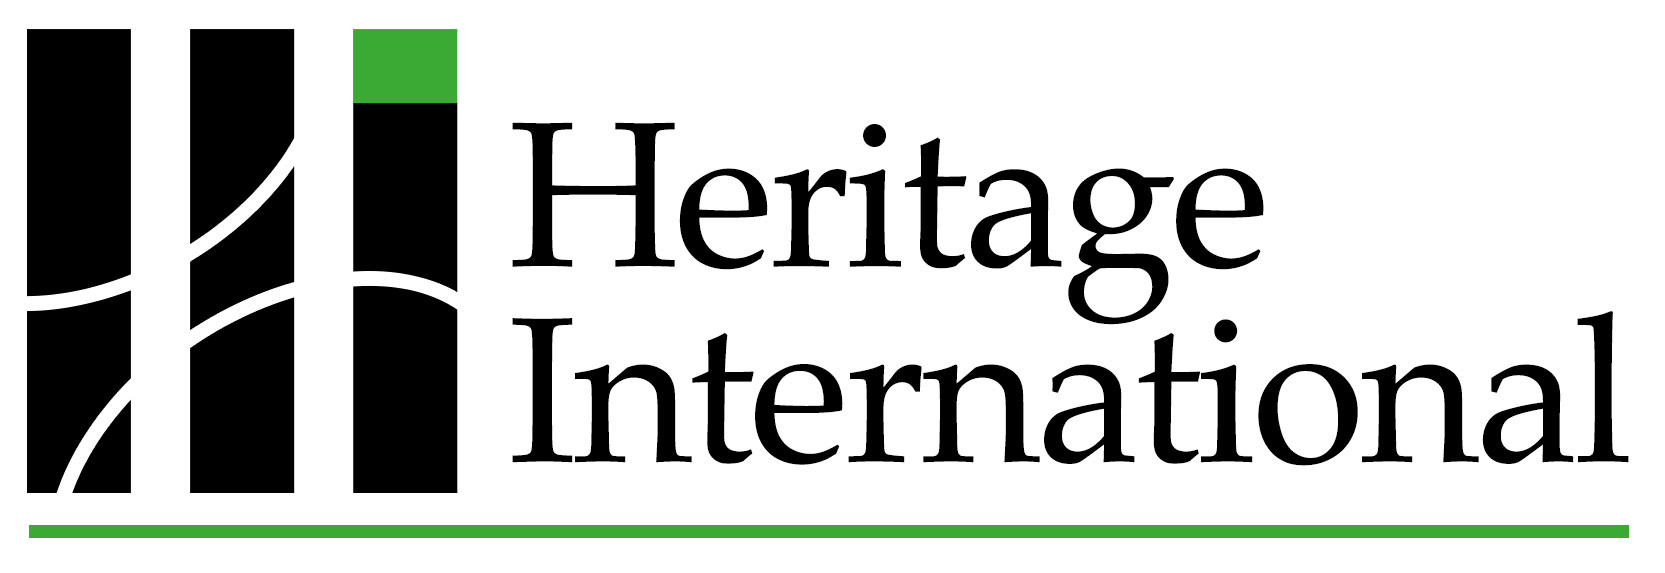 Heritage International